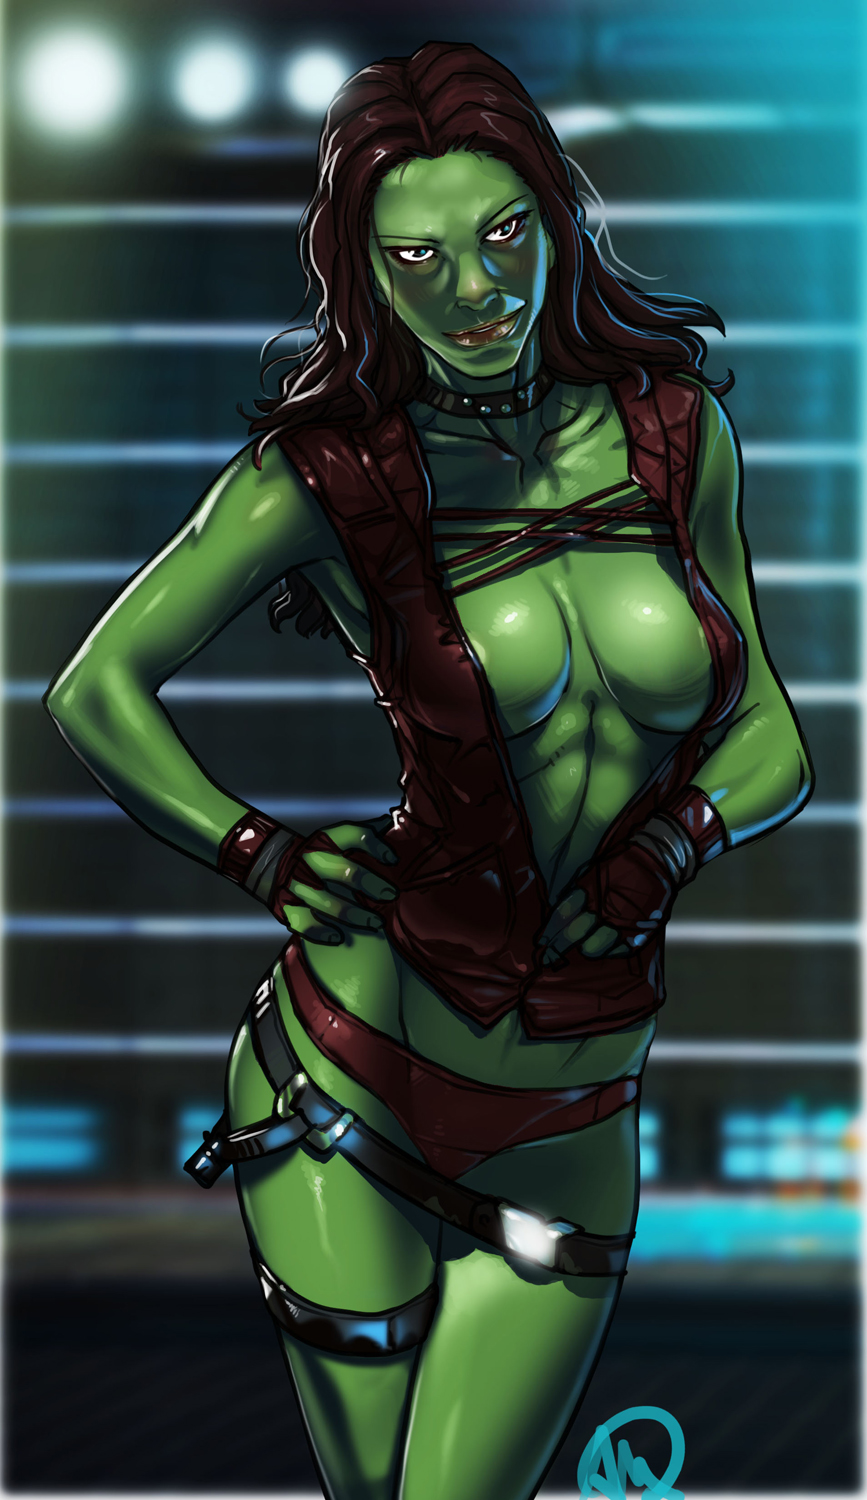 of gamora nude the galaxy guardians Where to find apex starbound